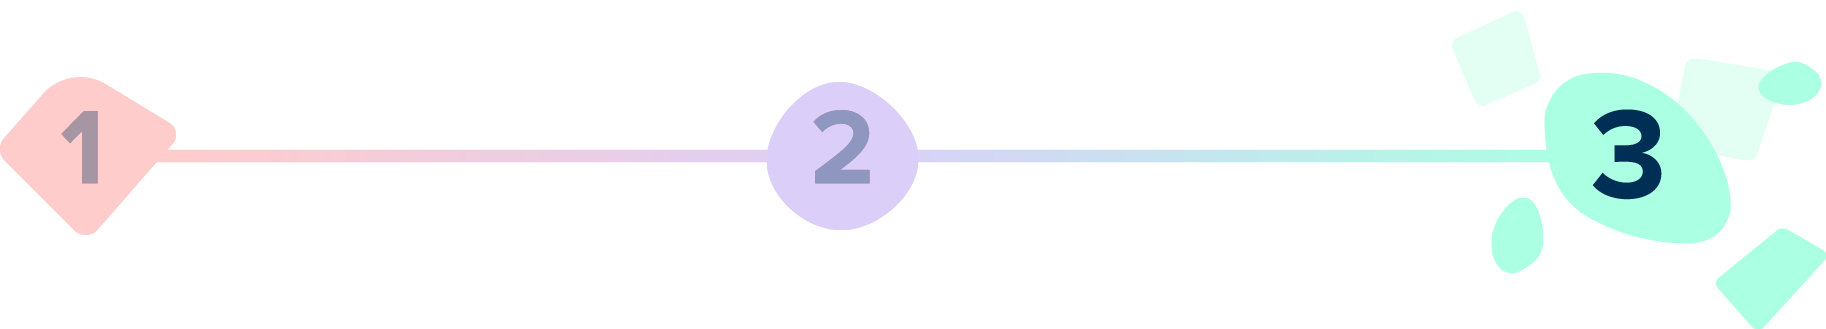 A line with numbers 1, 2, 3. Number 3 is larger with green shapes around it.